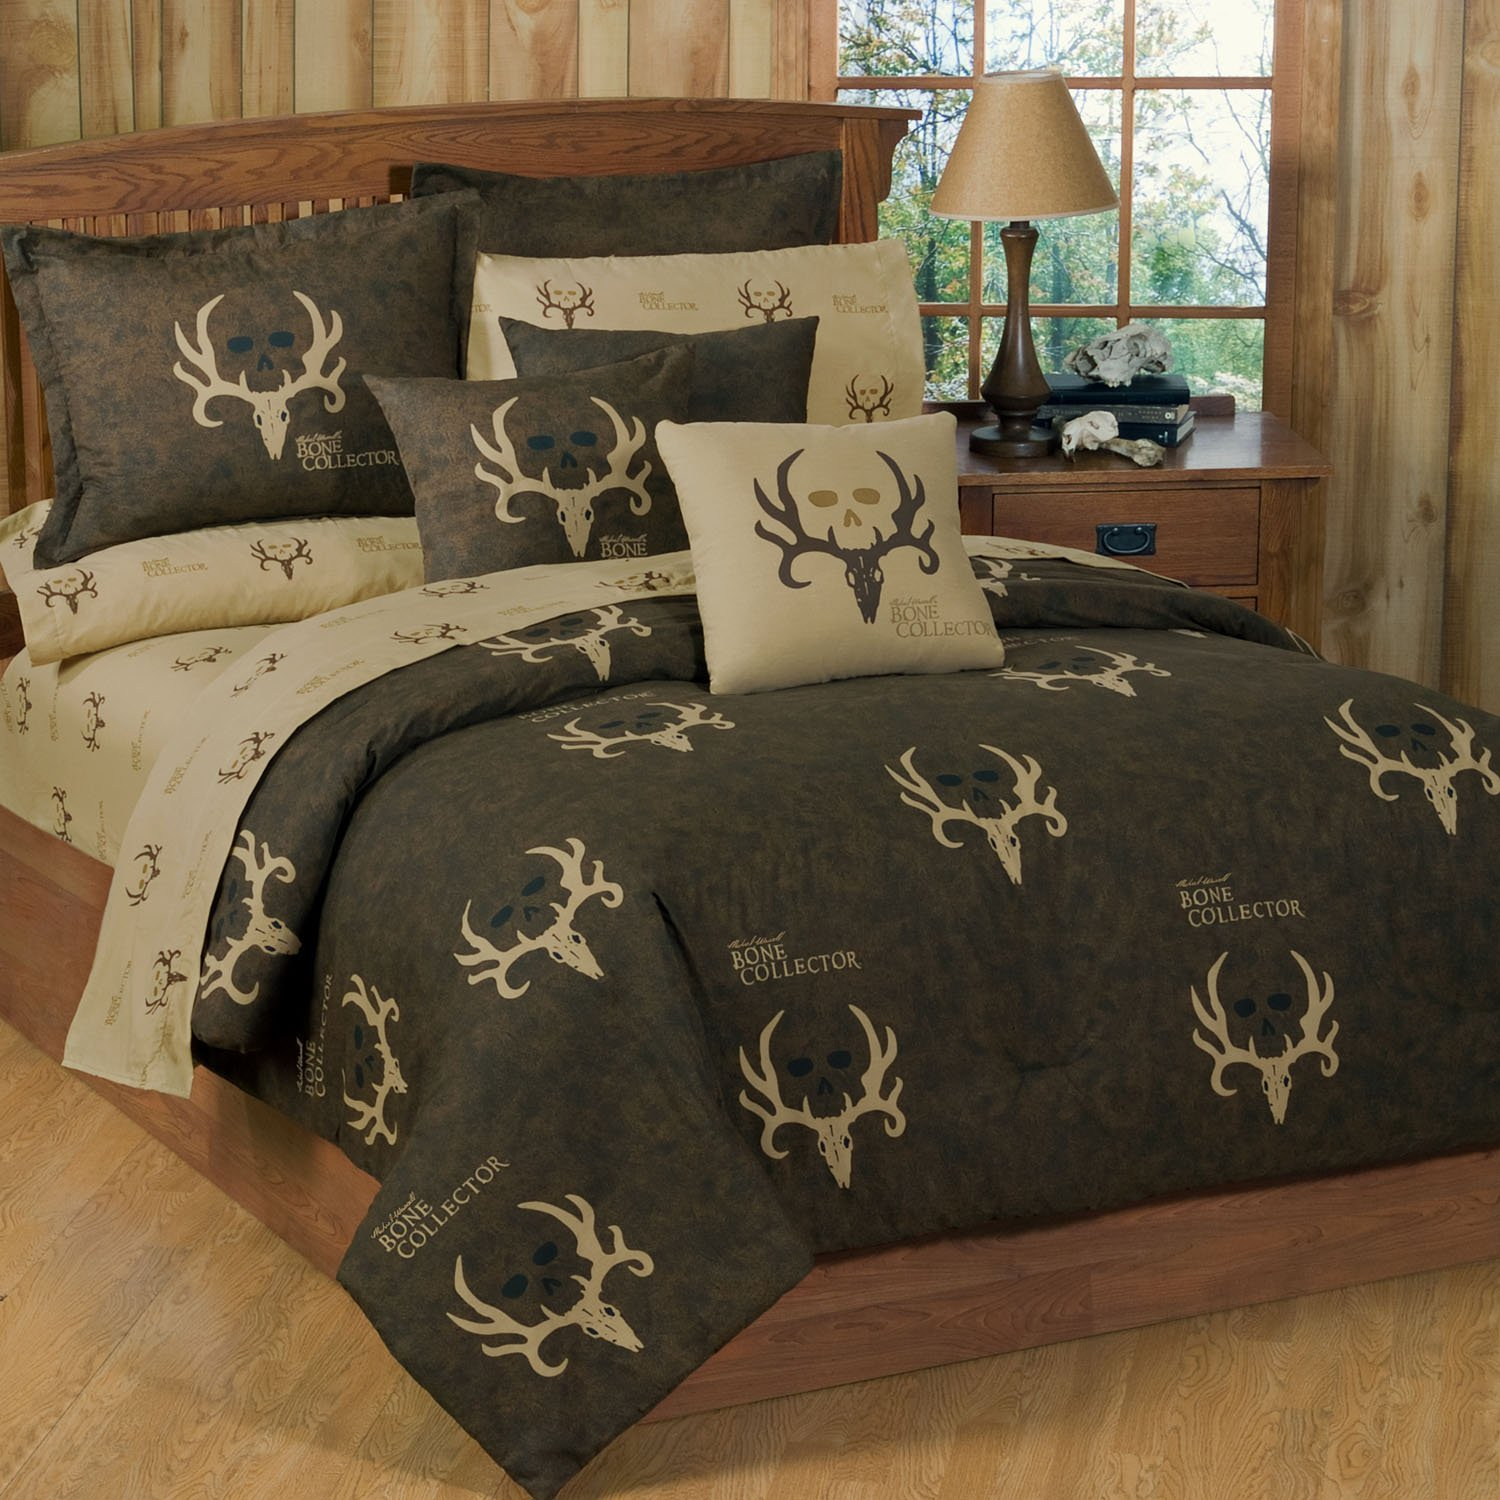 Total fab rustic whitetail deer bedding and curtains for Bedroom curtains and bedding